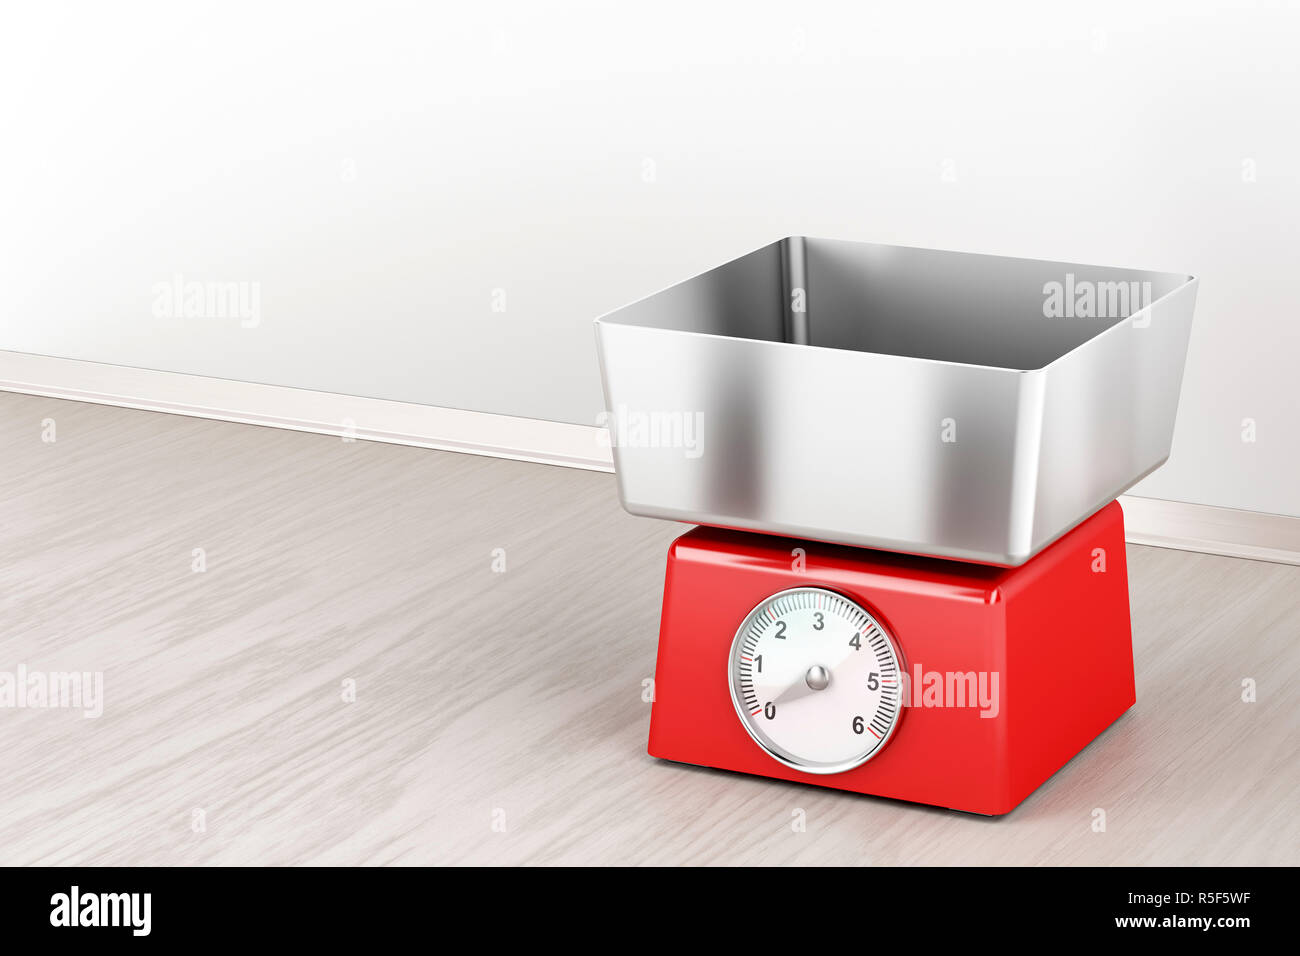 Mechanical weight scale - Stock Image